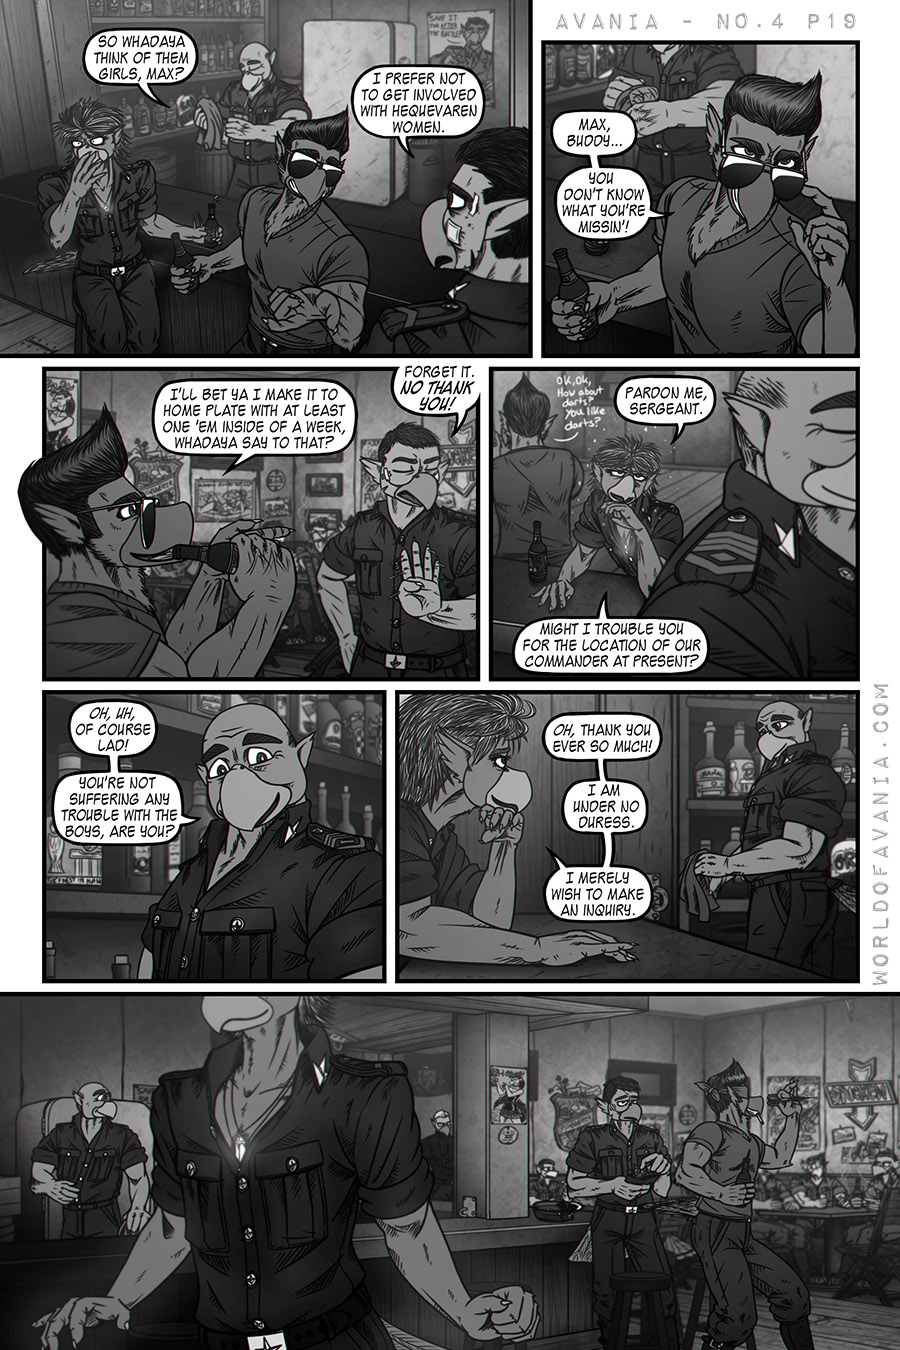 Avania Comic - Issue No.4, Page 19